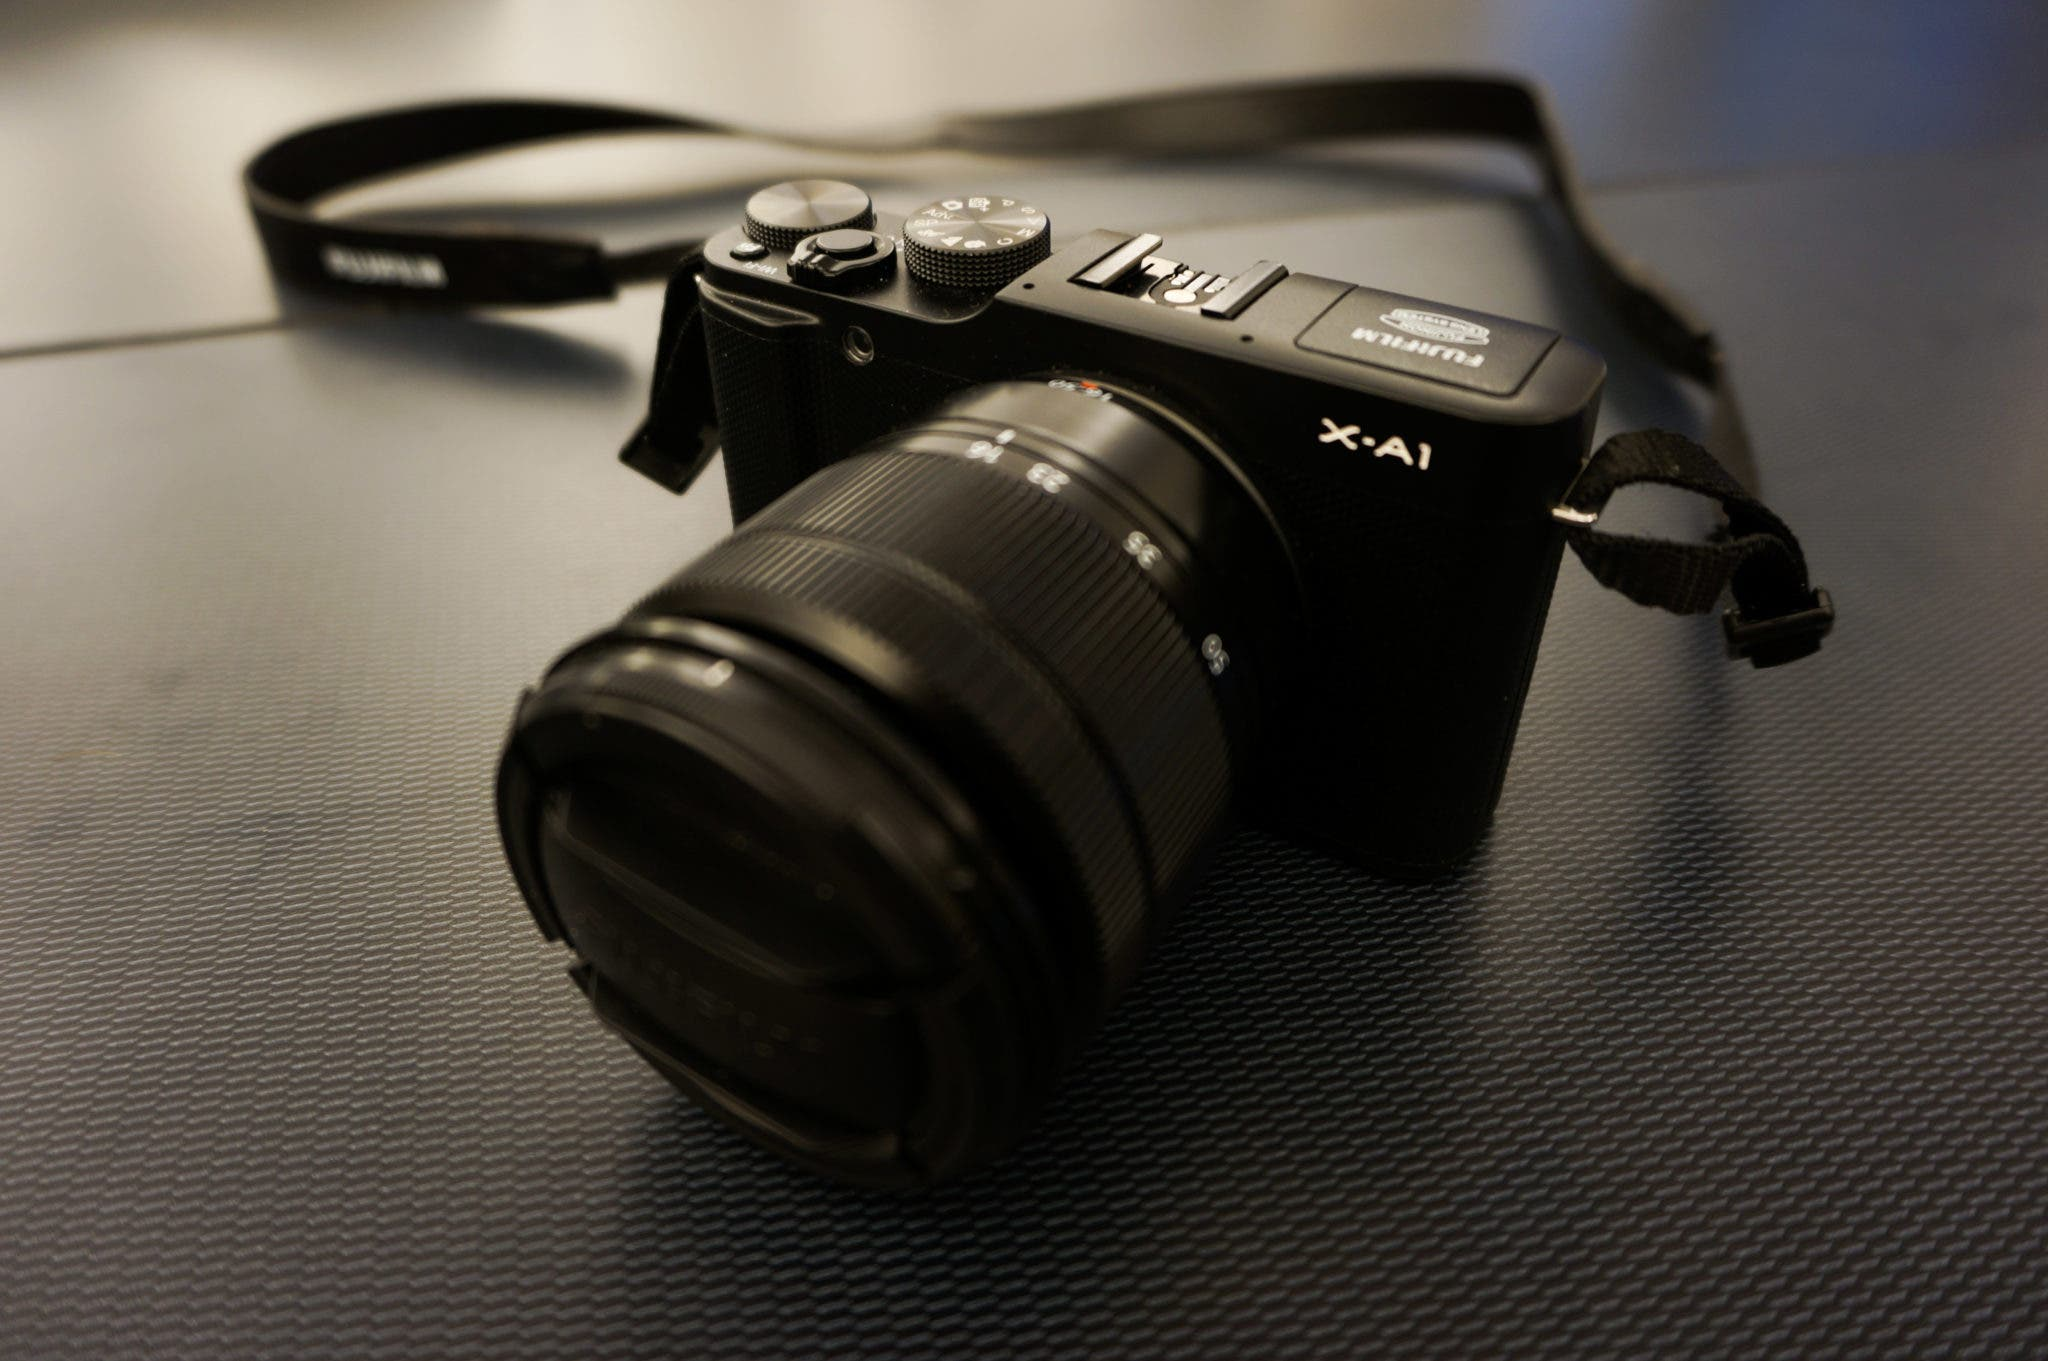 Fujifilm X-A10 Registered Internationally, Announcement Reportedly Immiment